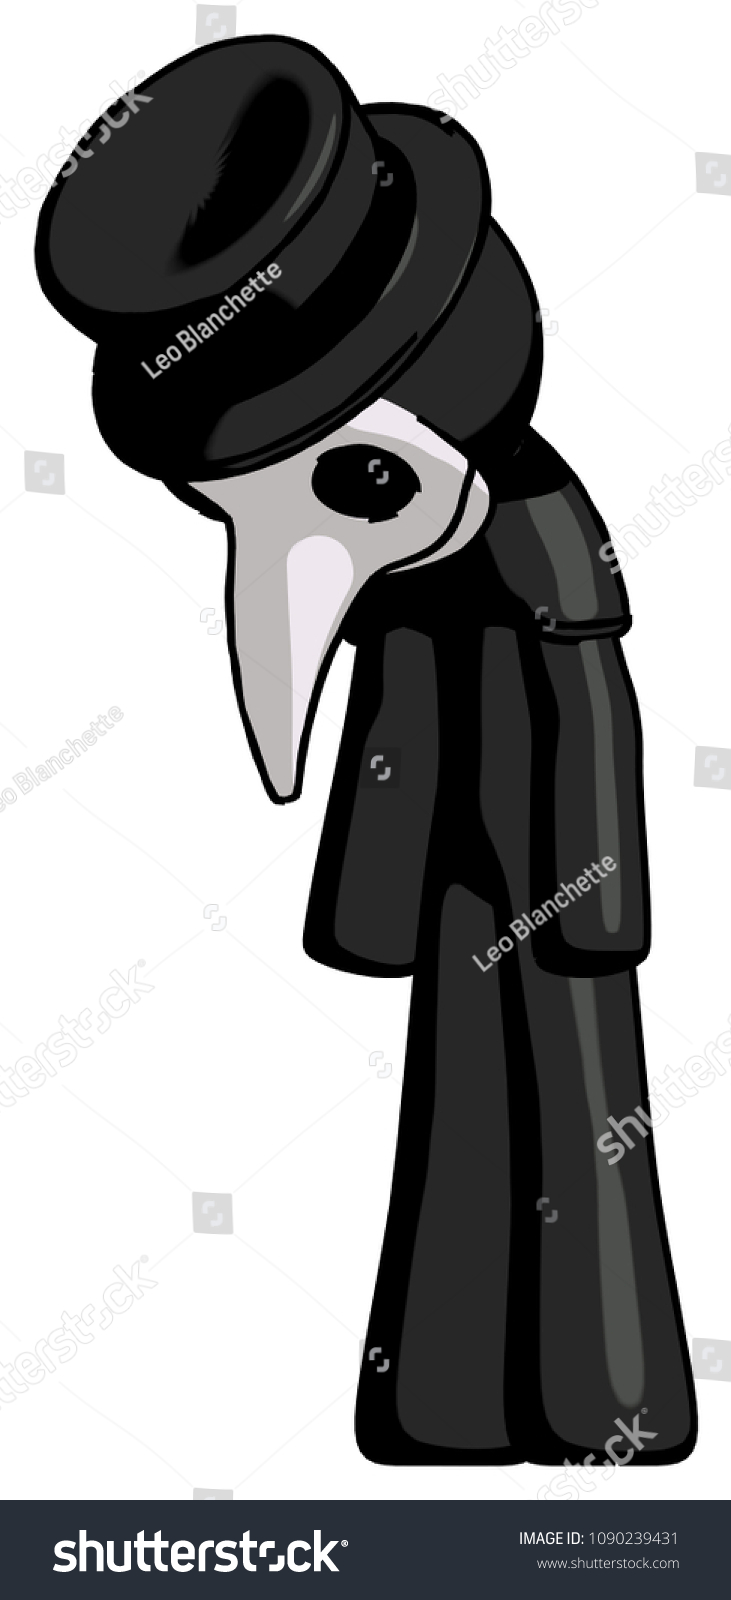 Royalty Free Stock Illustration Of Black Plague Doctor Man Depressed